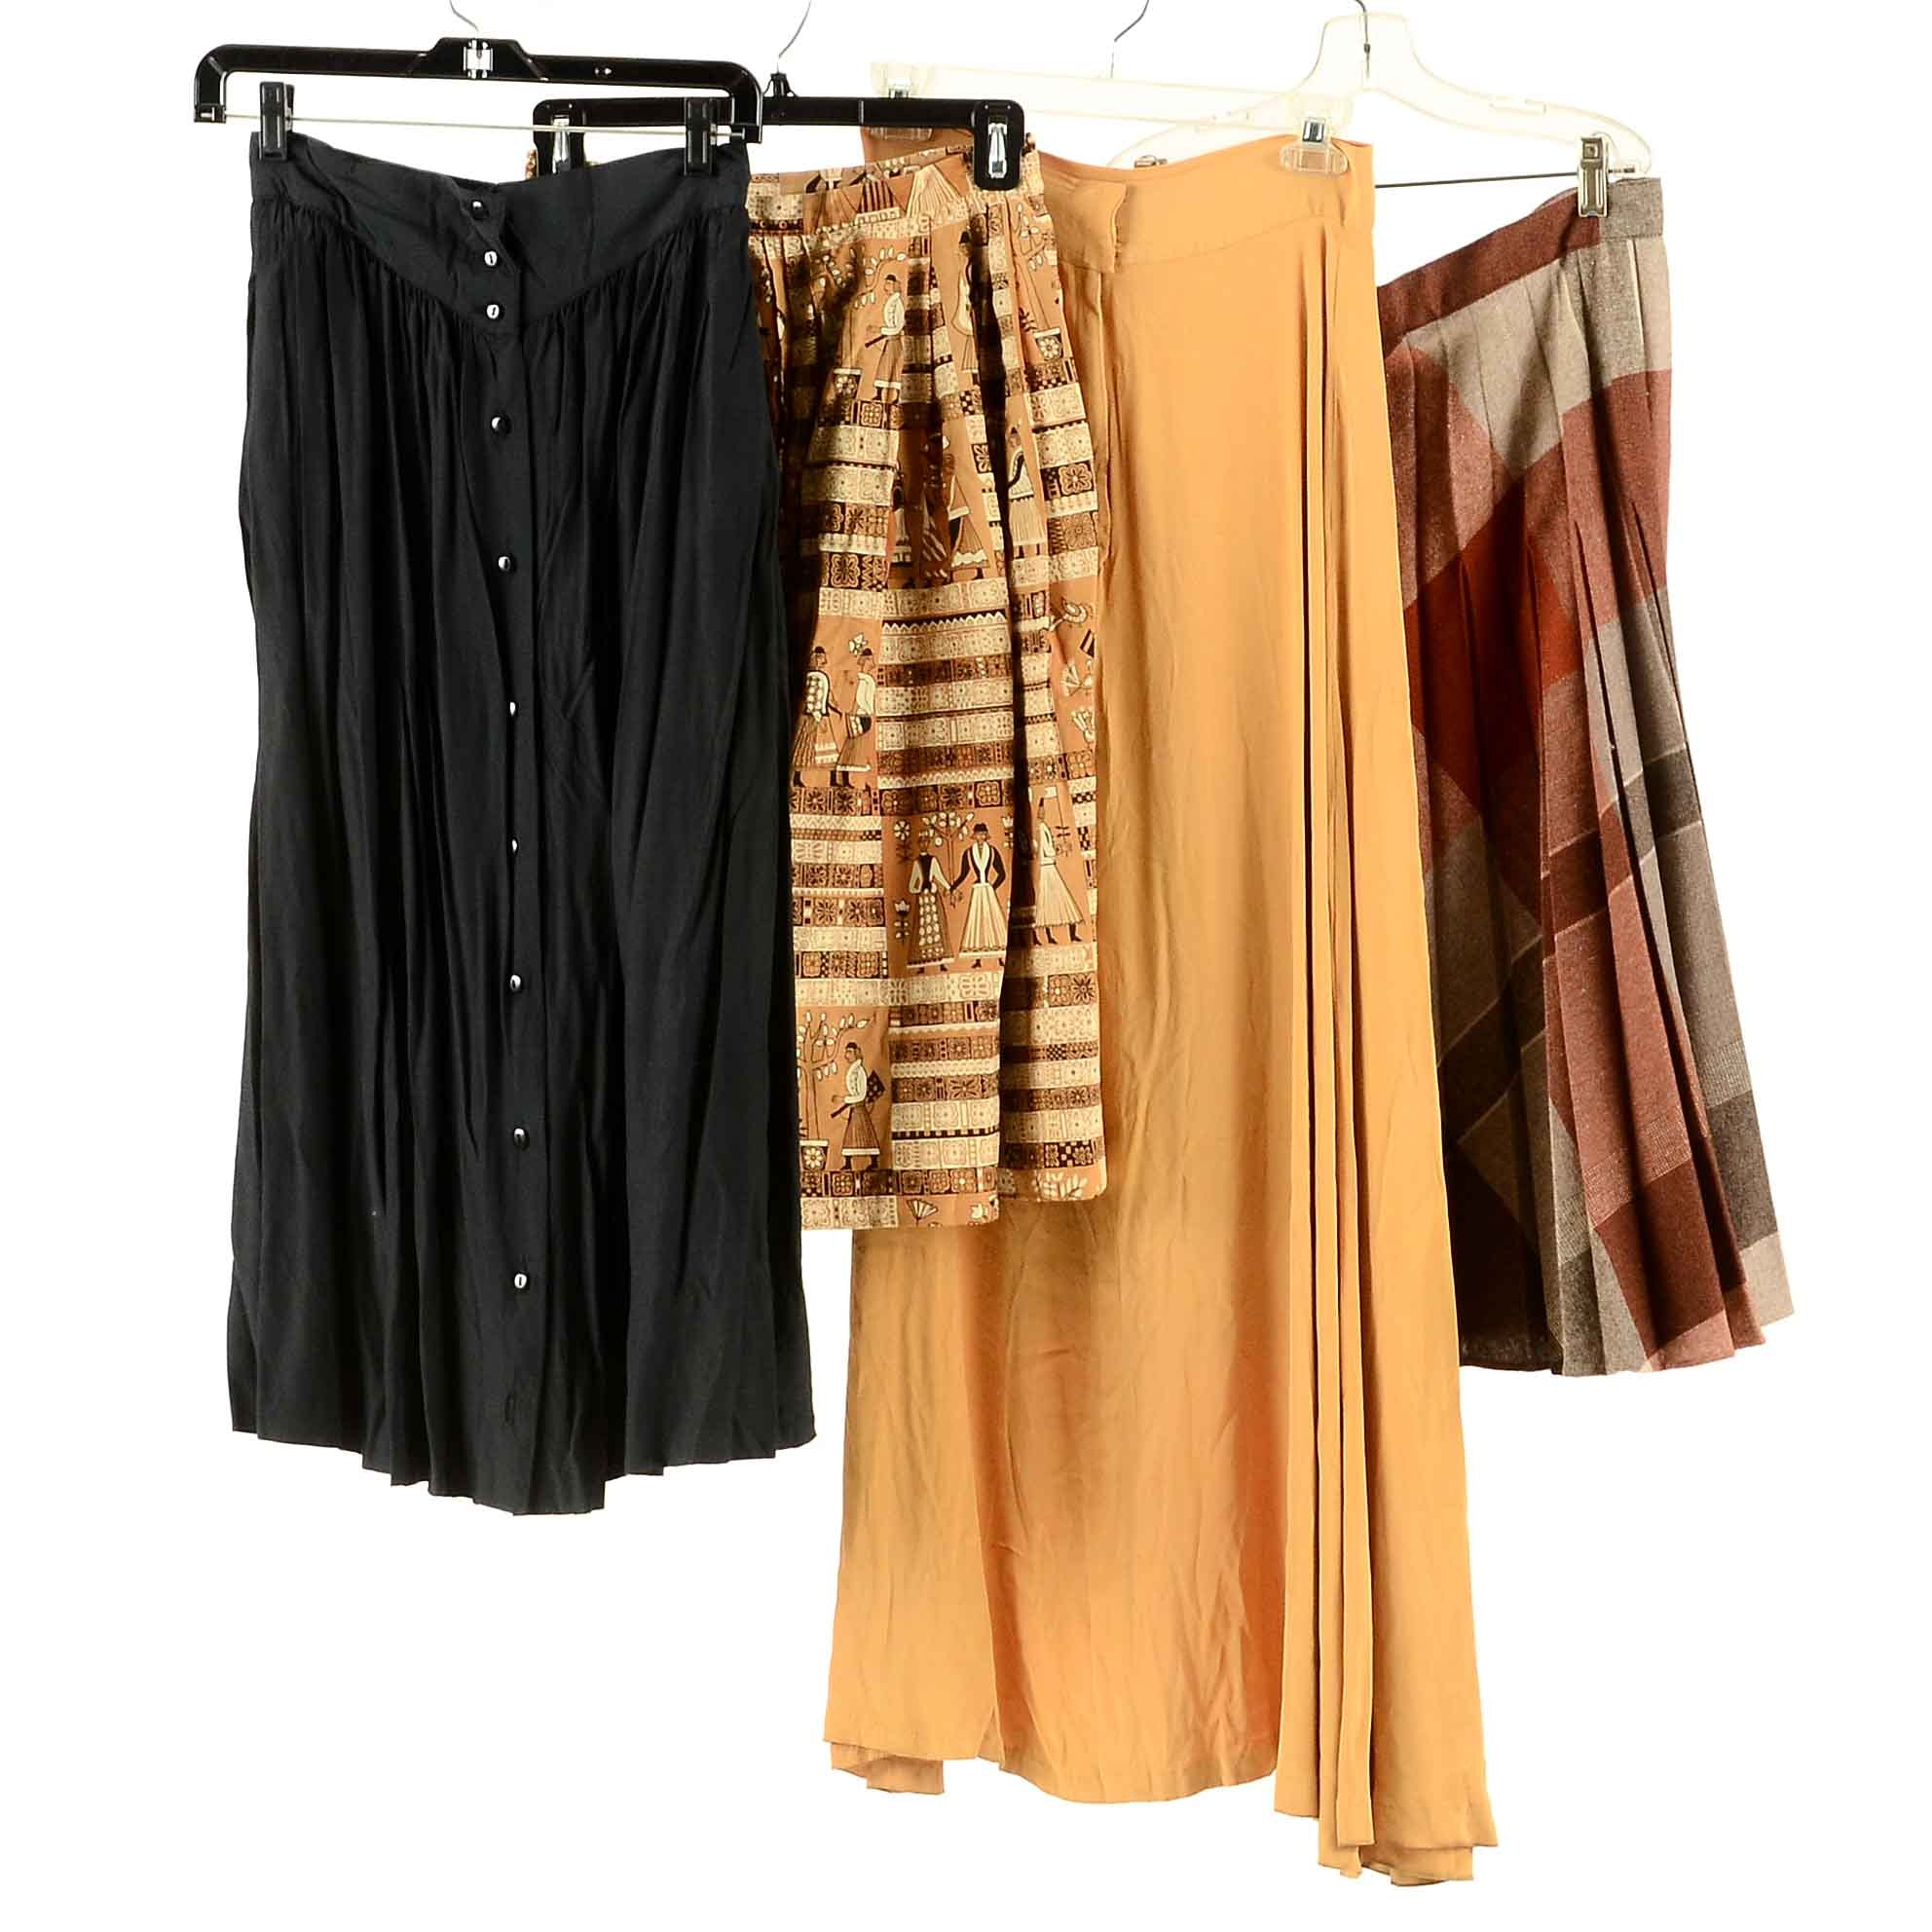 Collection of Vintage Skirts including Nelly De Grab